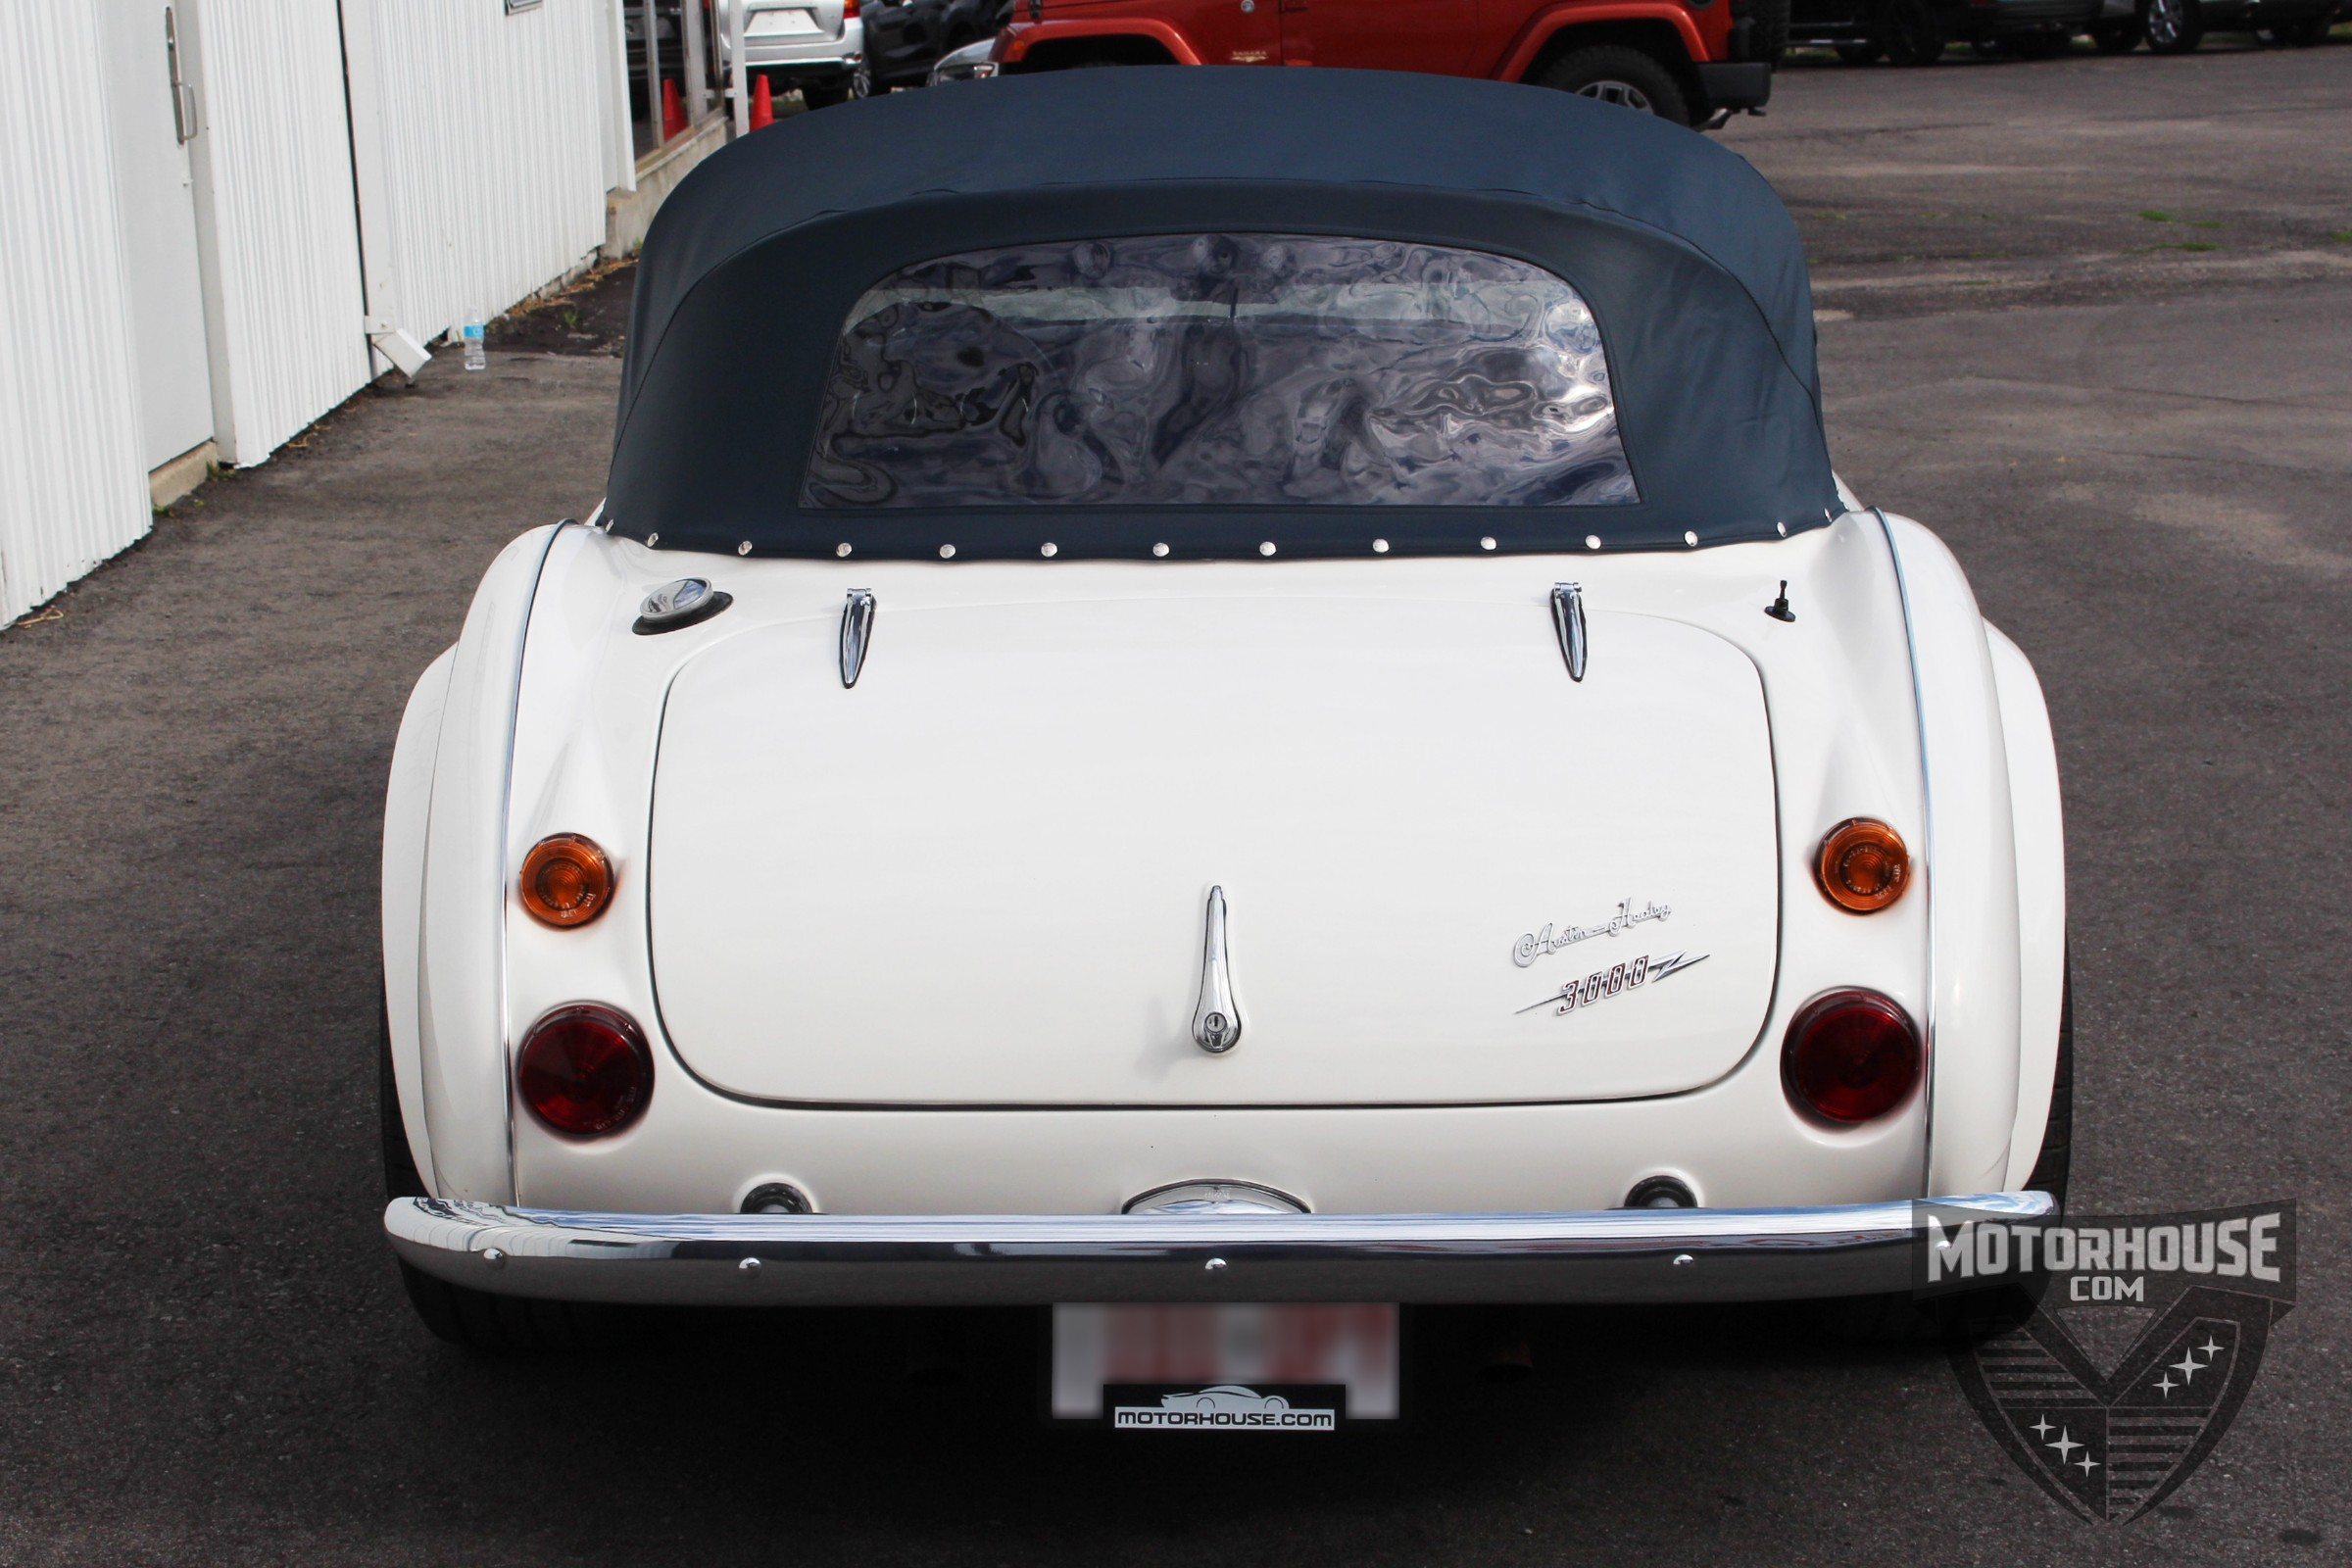 1965 Austin-Healey 3000Z Convertable (Stk: 1375) in Carleton Place - Image 26 of 48